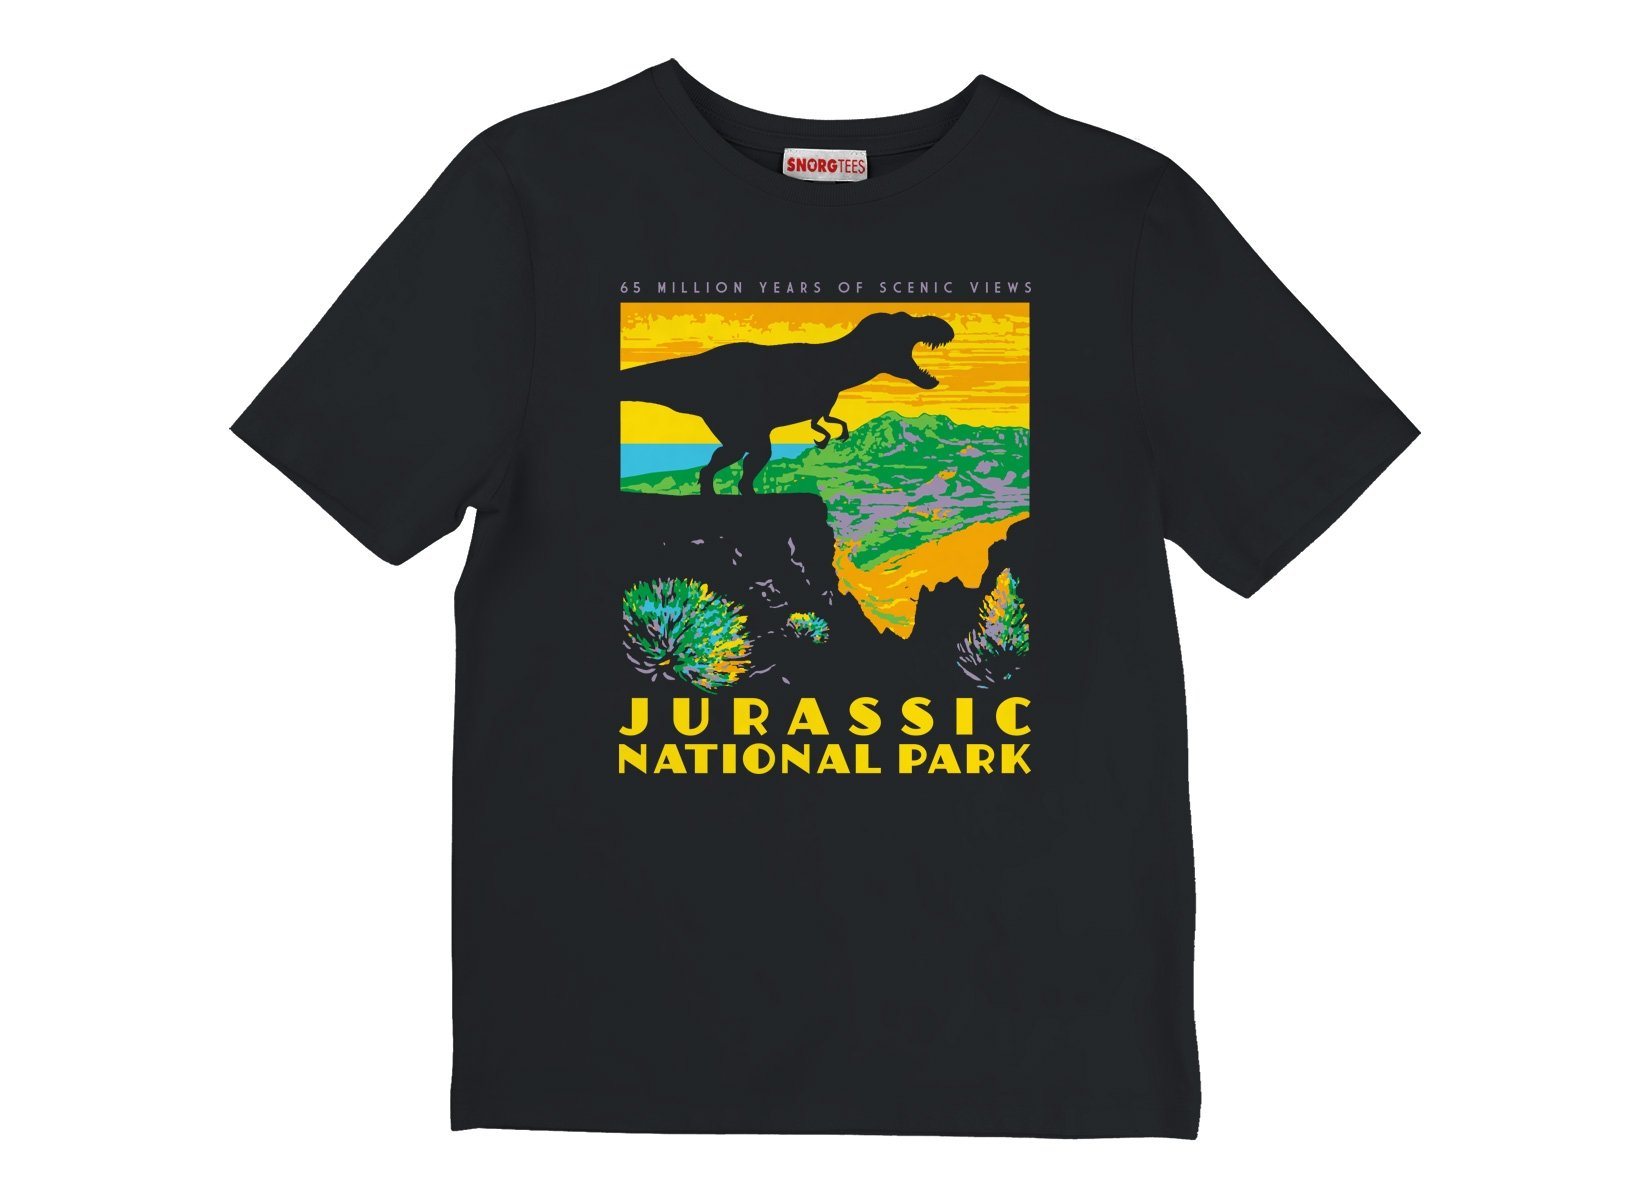 Jurassic National Park on Kids T-Shirt